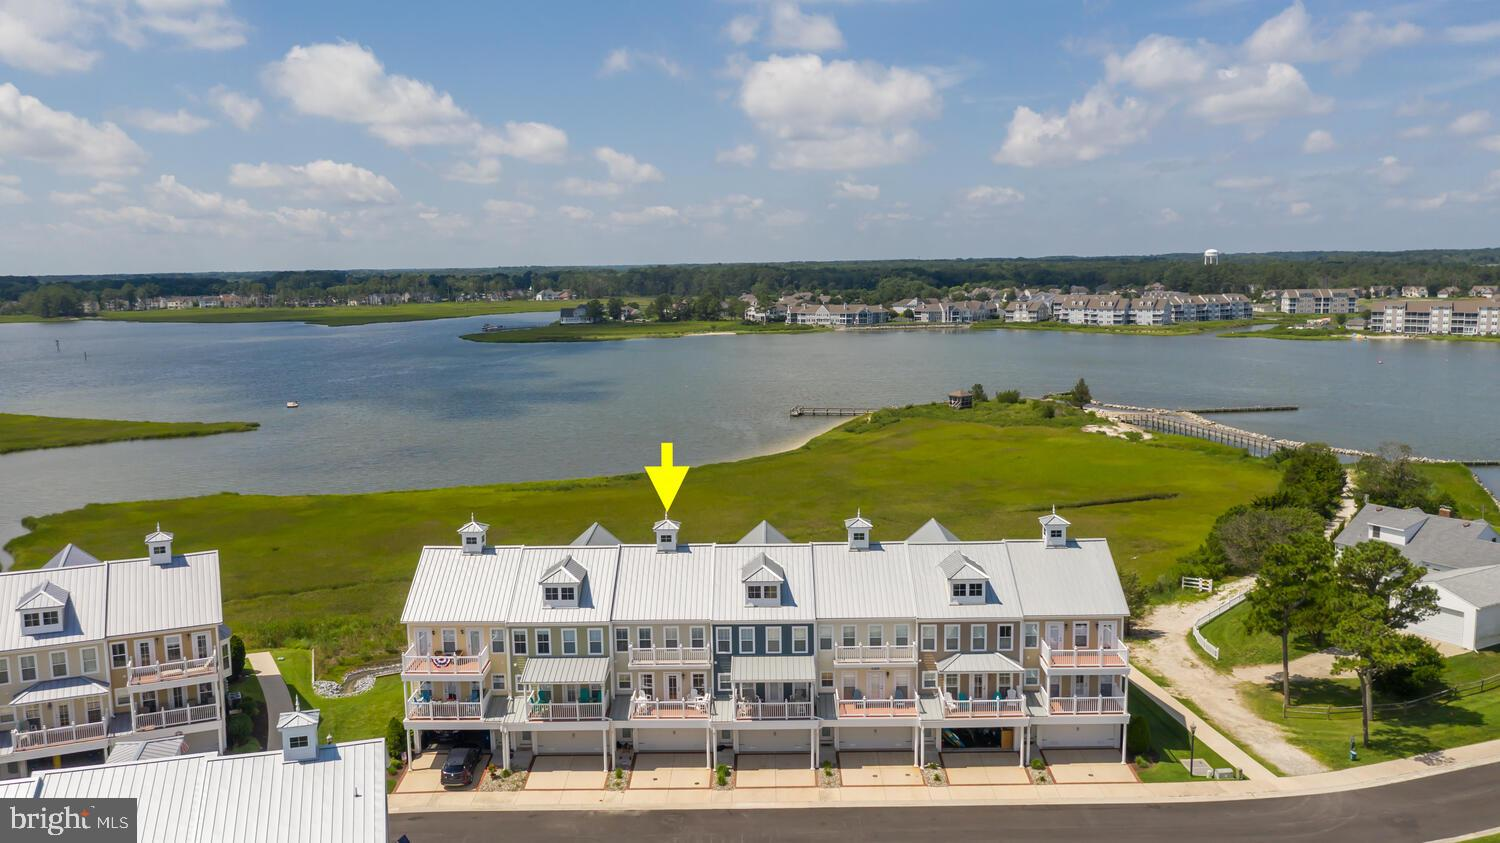 You have to check out these AMAZING views in this sought after WATERFRONT Community of Sandy Cove! Bring your boat to your personal deeded boat slip (#59) with 7000 lb boat lift.  This fully furnished, 4 Bedroom,  3.5 Bath Townhouse features multiple decks overlooking the water, outdoor shower and a 2 car garage to store your toys! Main Living area features hardwood floors, Gourmet Kitchen with double ovens and brand-new cooktop!  Granite counter-tops and additional sitting area off the kitchen leads to a large screened in porch! Upstairs features a Master Bedroom with a huge sitting area overlooking the water plus TWO walk-in Closets!! Sellers are including 2 kayaks for your enjoyment!! Community features Community pool, Marina , private Beach area, Community Fishing/crabbing Pier and Boat Ramp!  All this only a short distance to Bethany Beach, shopping, restaurants and more!